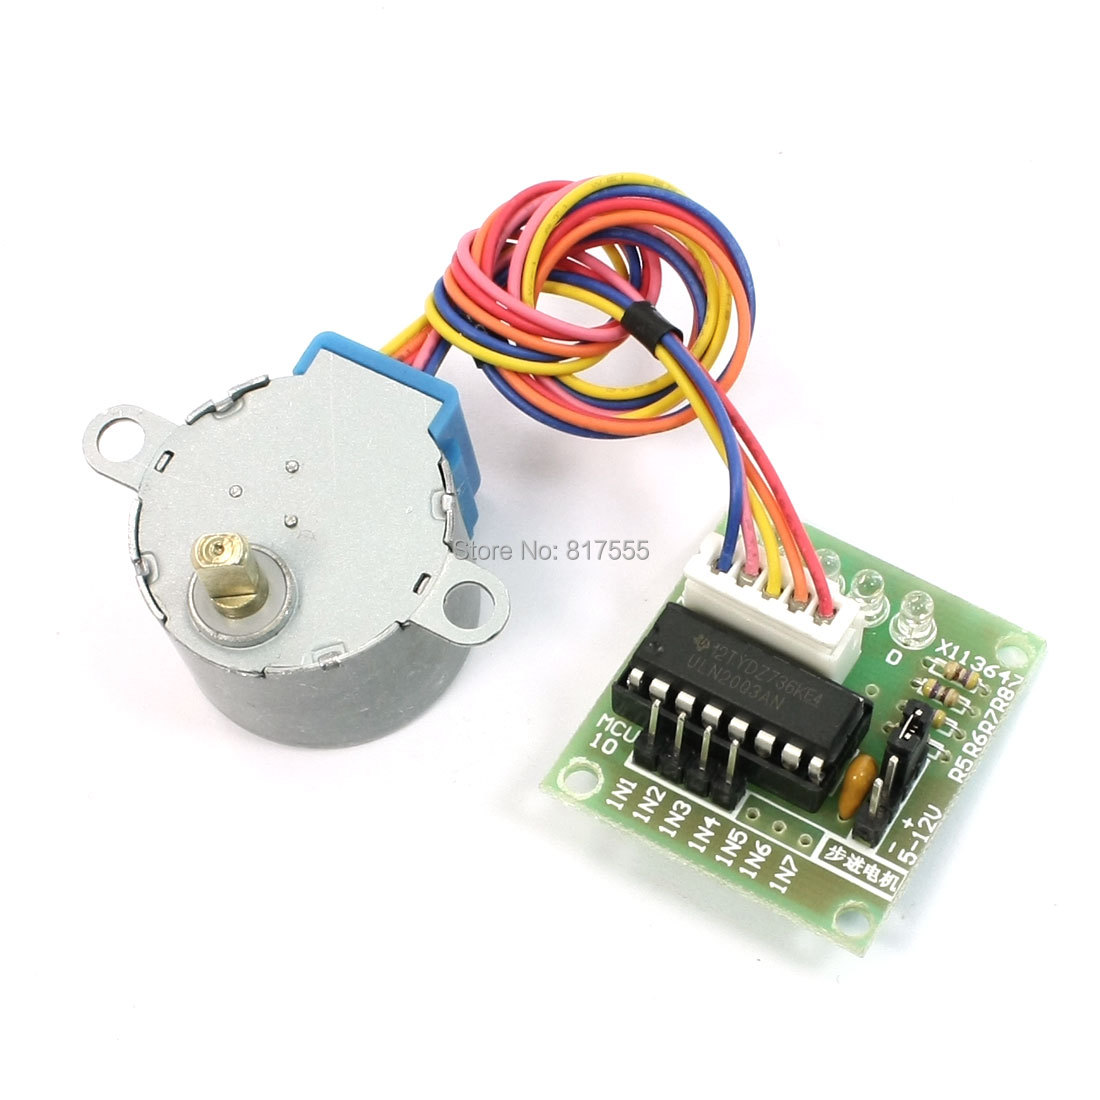 mcu diy 4 phase 5 wires stepper motor 5v with ul2003 driver board stepper motor wiring 4 stepper motor wiring 5 wire [ 1100 x 1100 Pixel ]